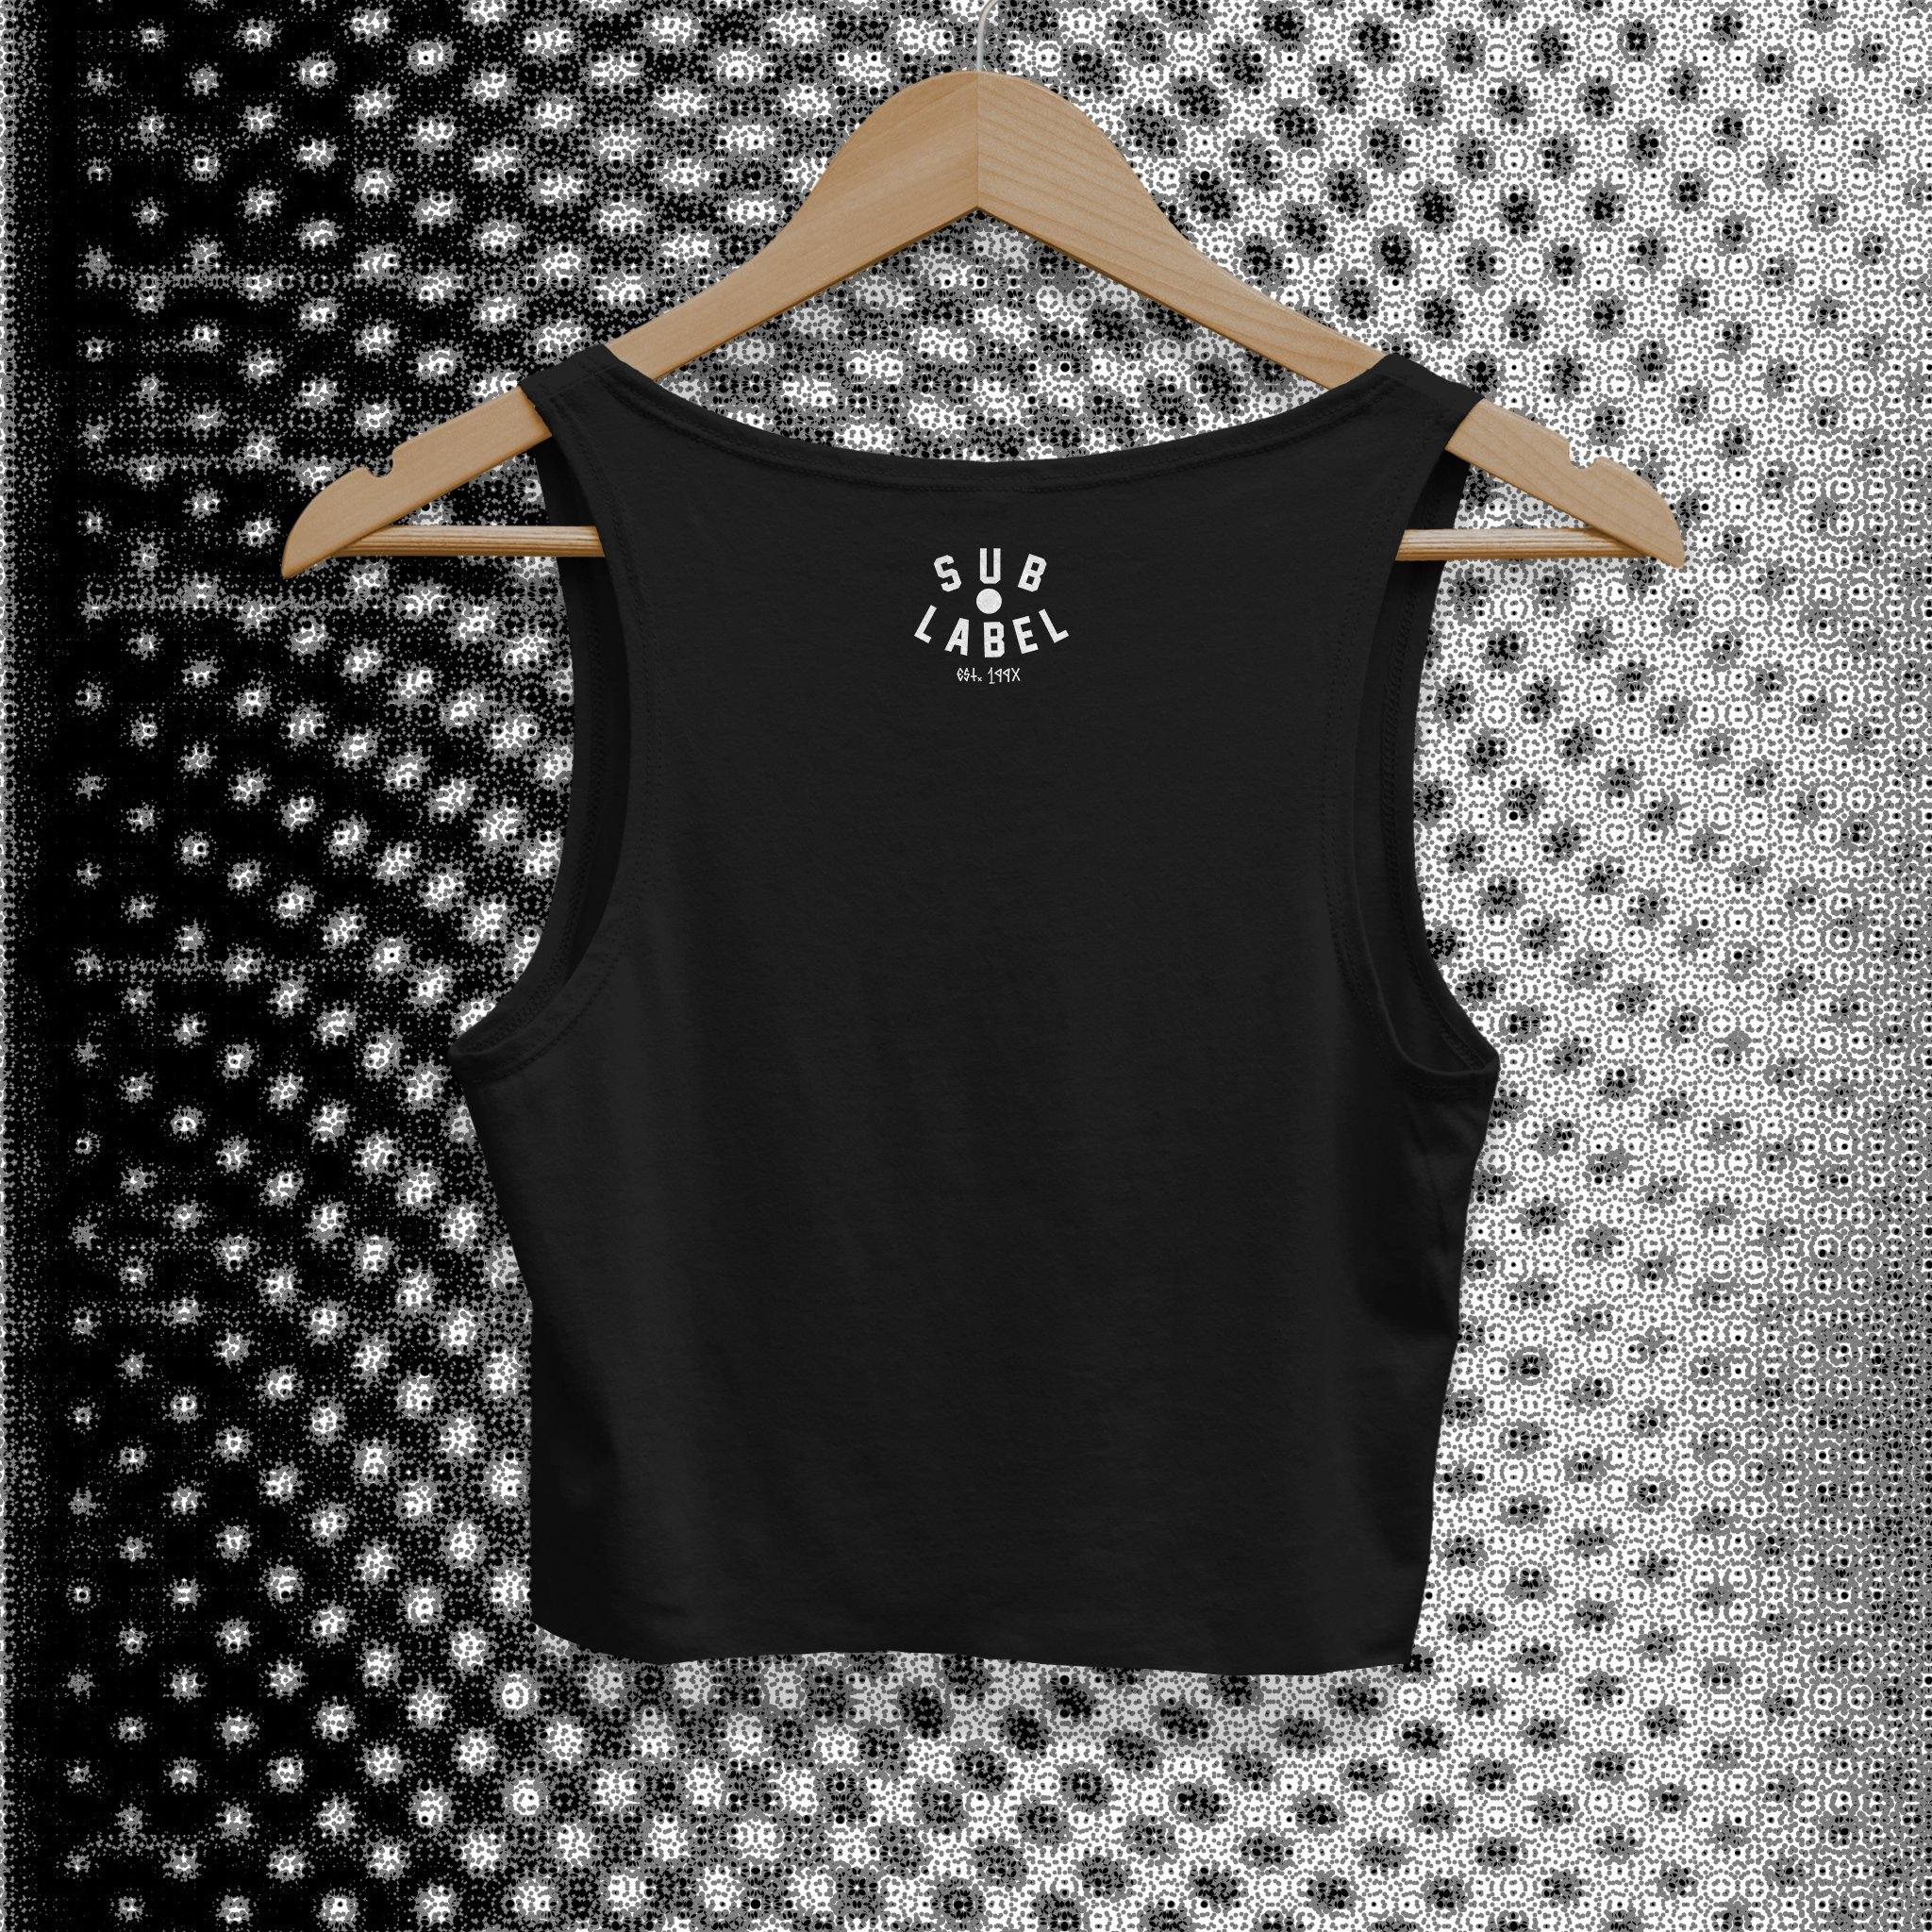 sublabel_techvana_smiley_techno_rave_club_edm_crop_tank_cropped_raw_edge_womens_female_black_back